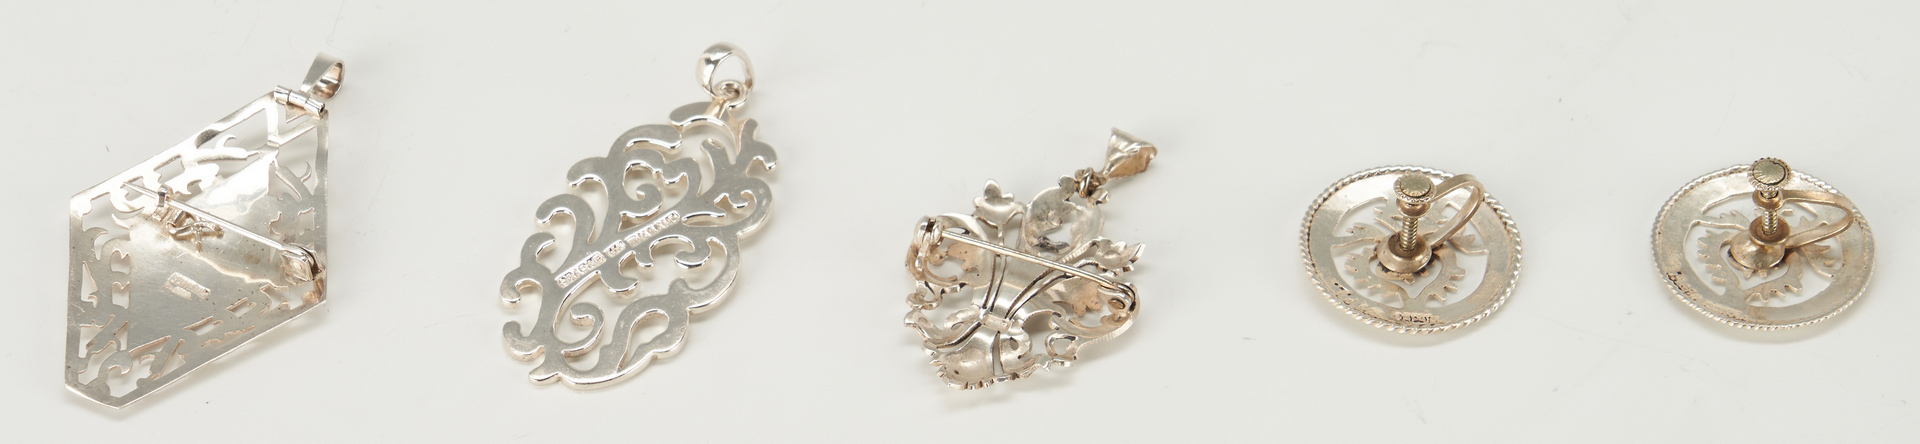 Lot 943: 11 Sterling and Coin Silver Jewelry Pieces